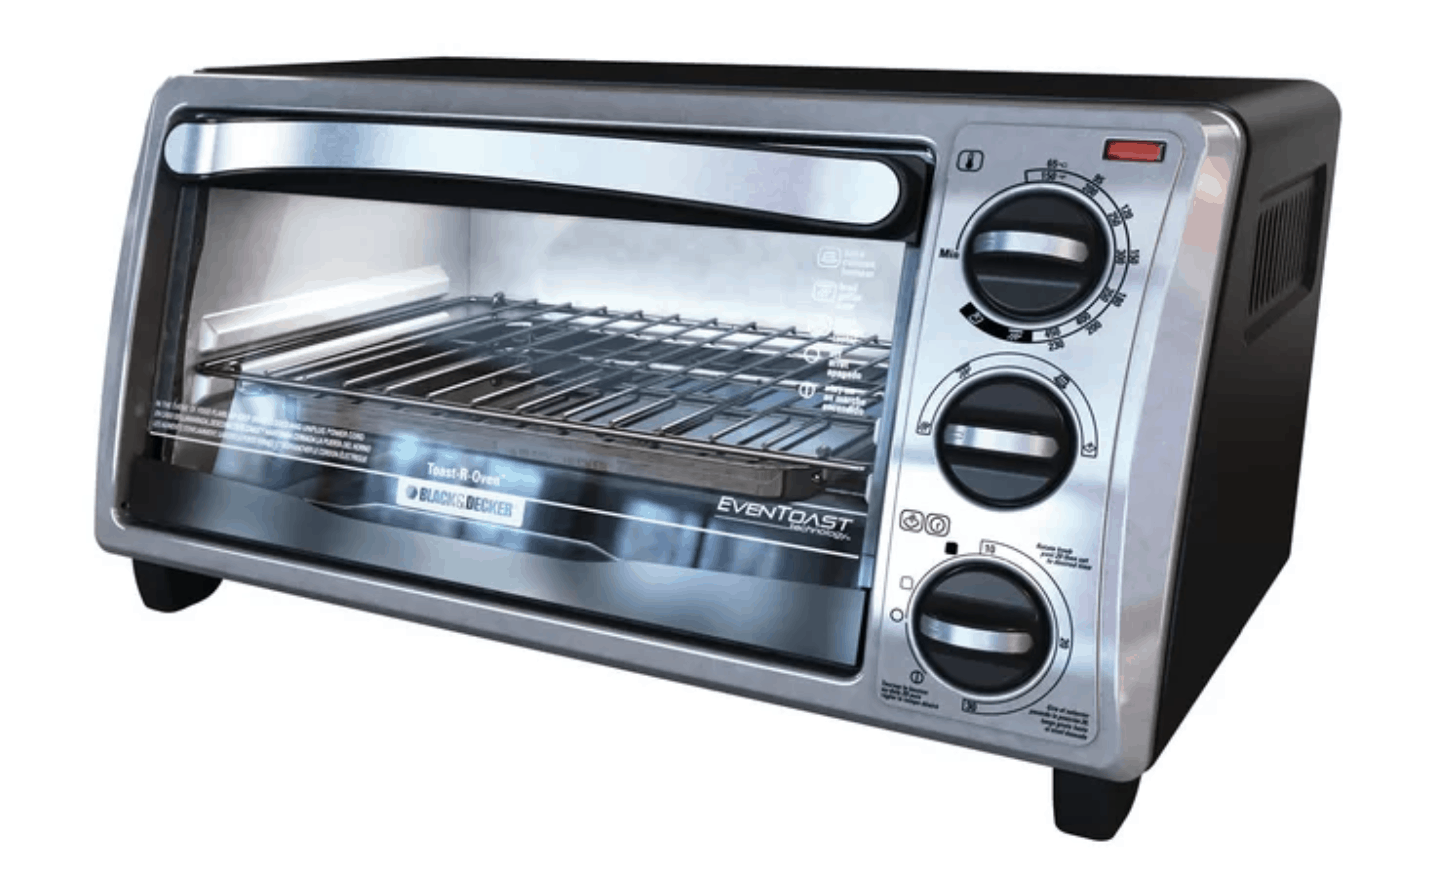 Compact Black & Decker toaster oven